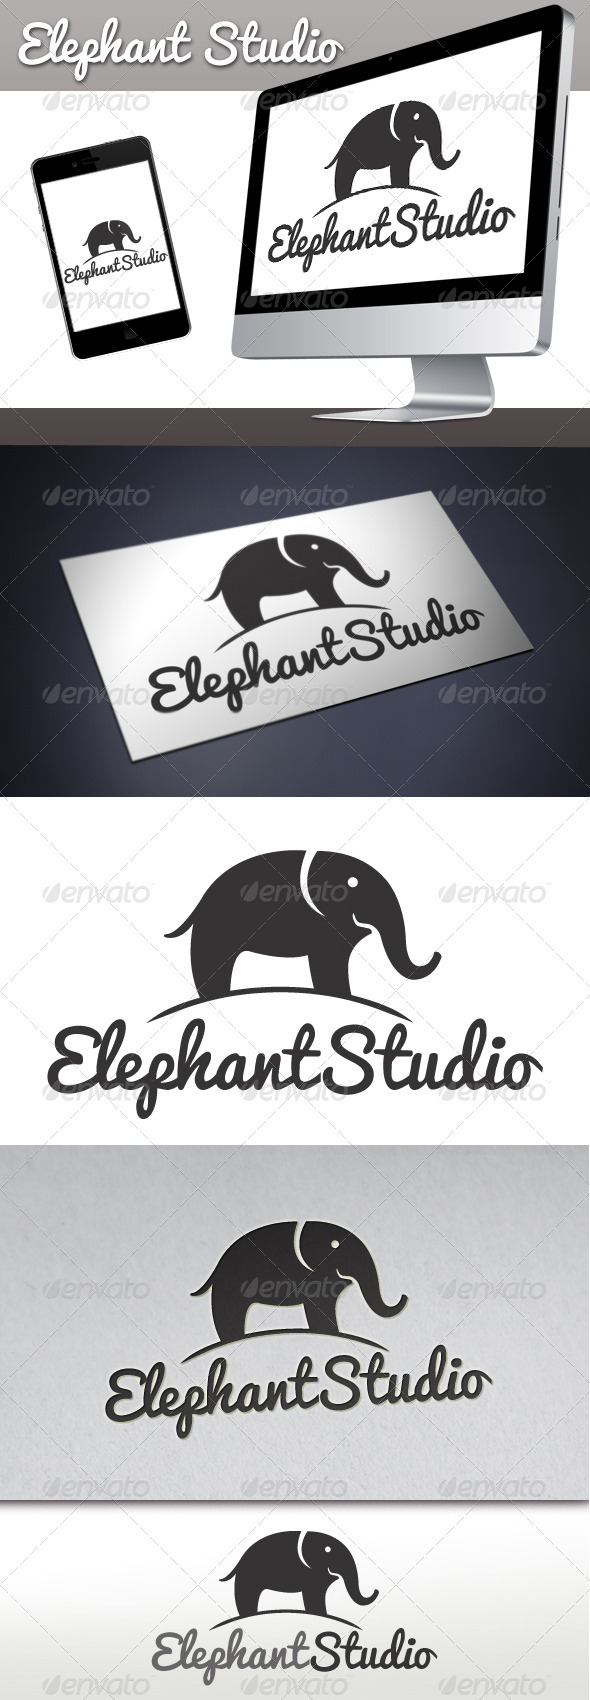 Elephant Studio Logo 1 - Animals Logo Templates